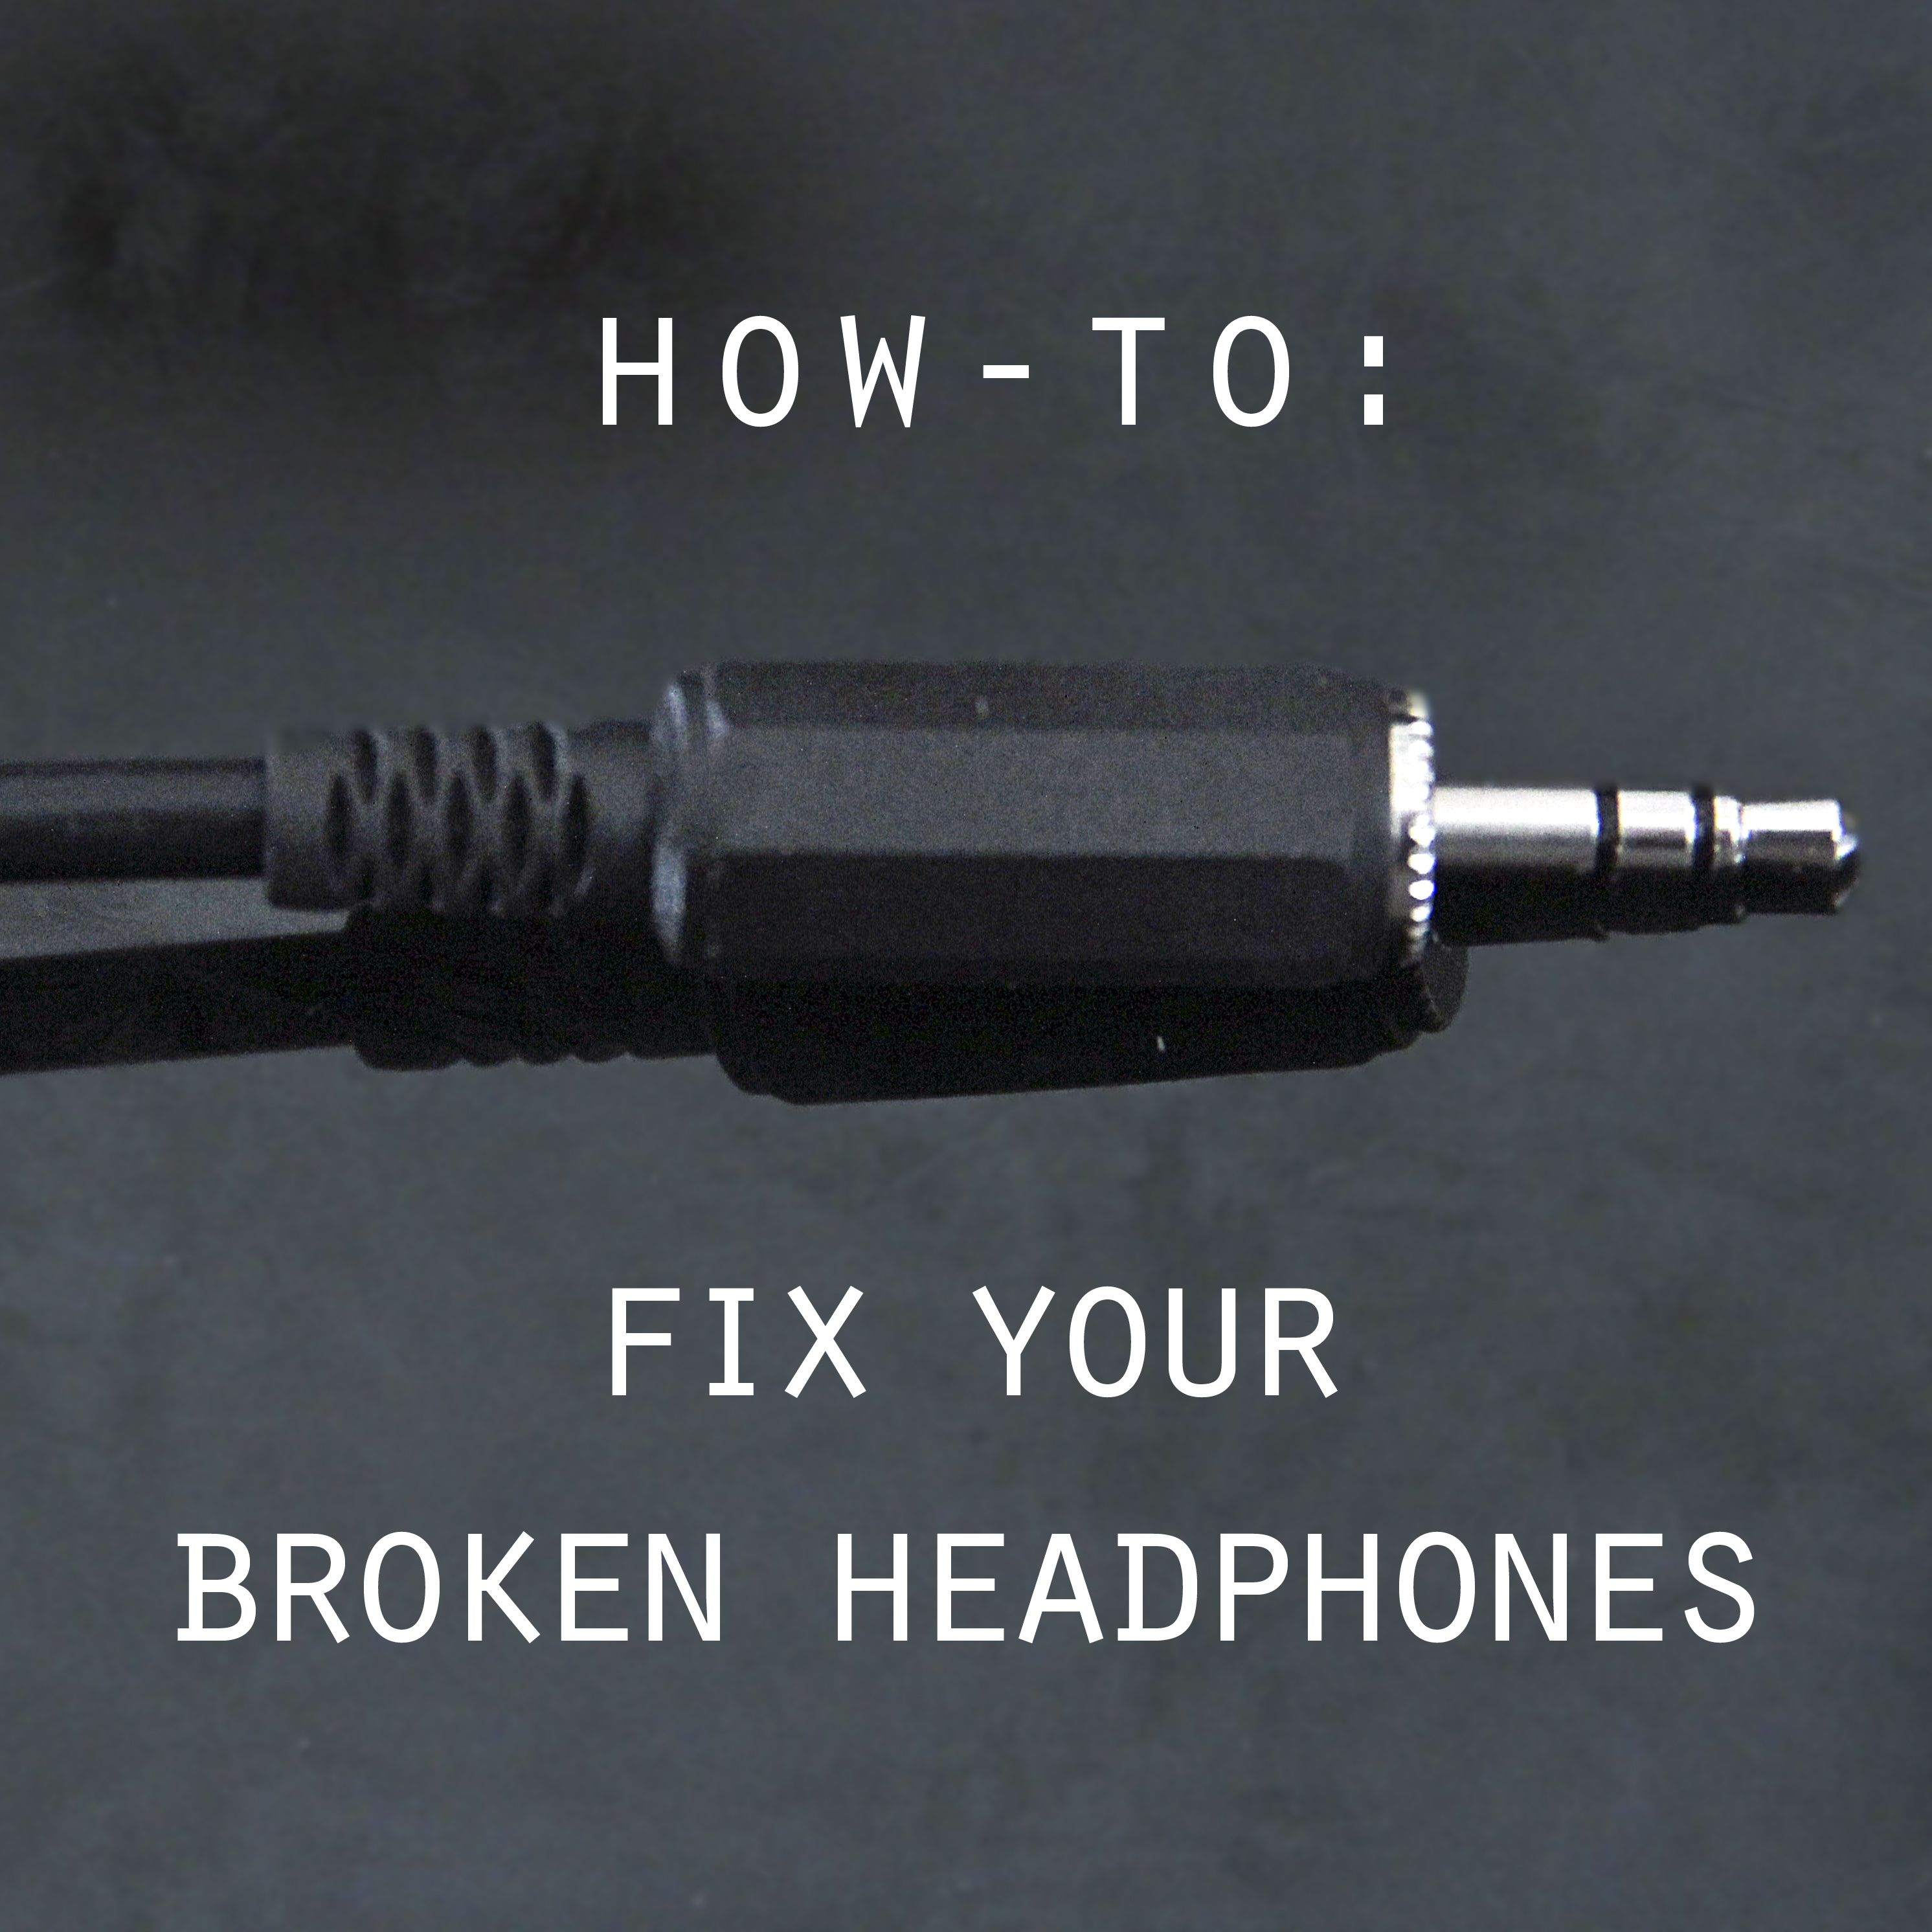 Fix your busted headphones!